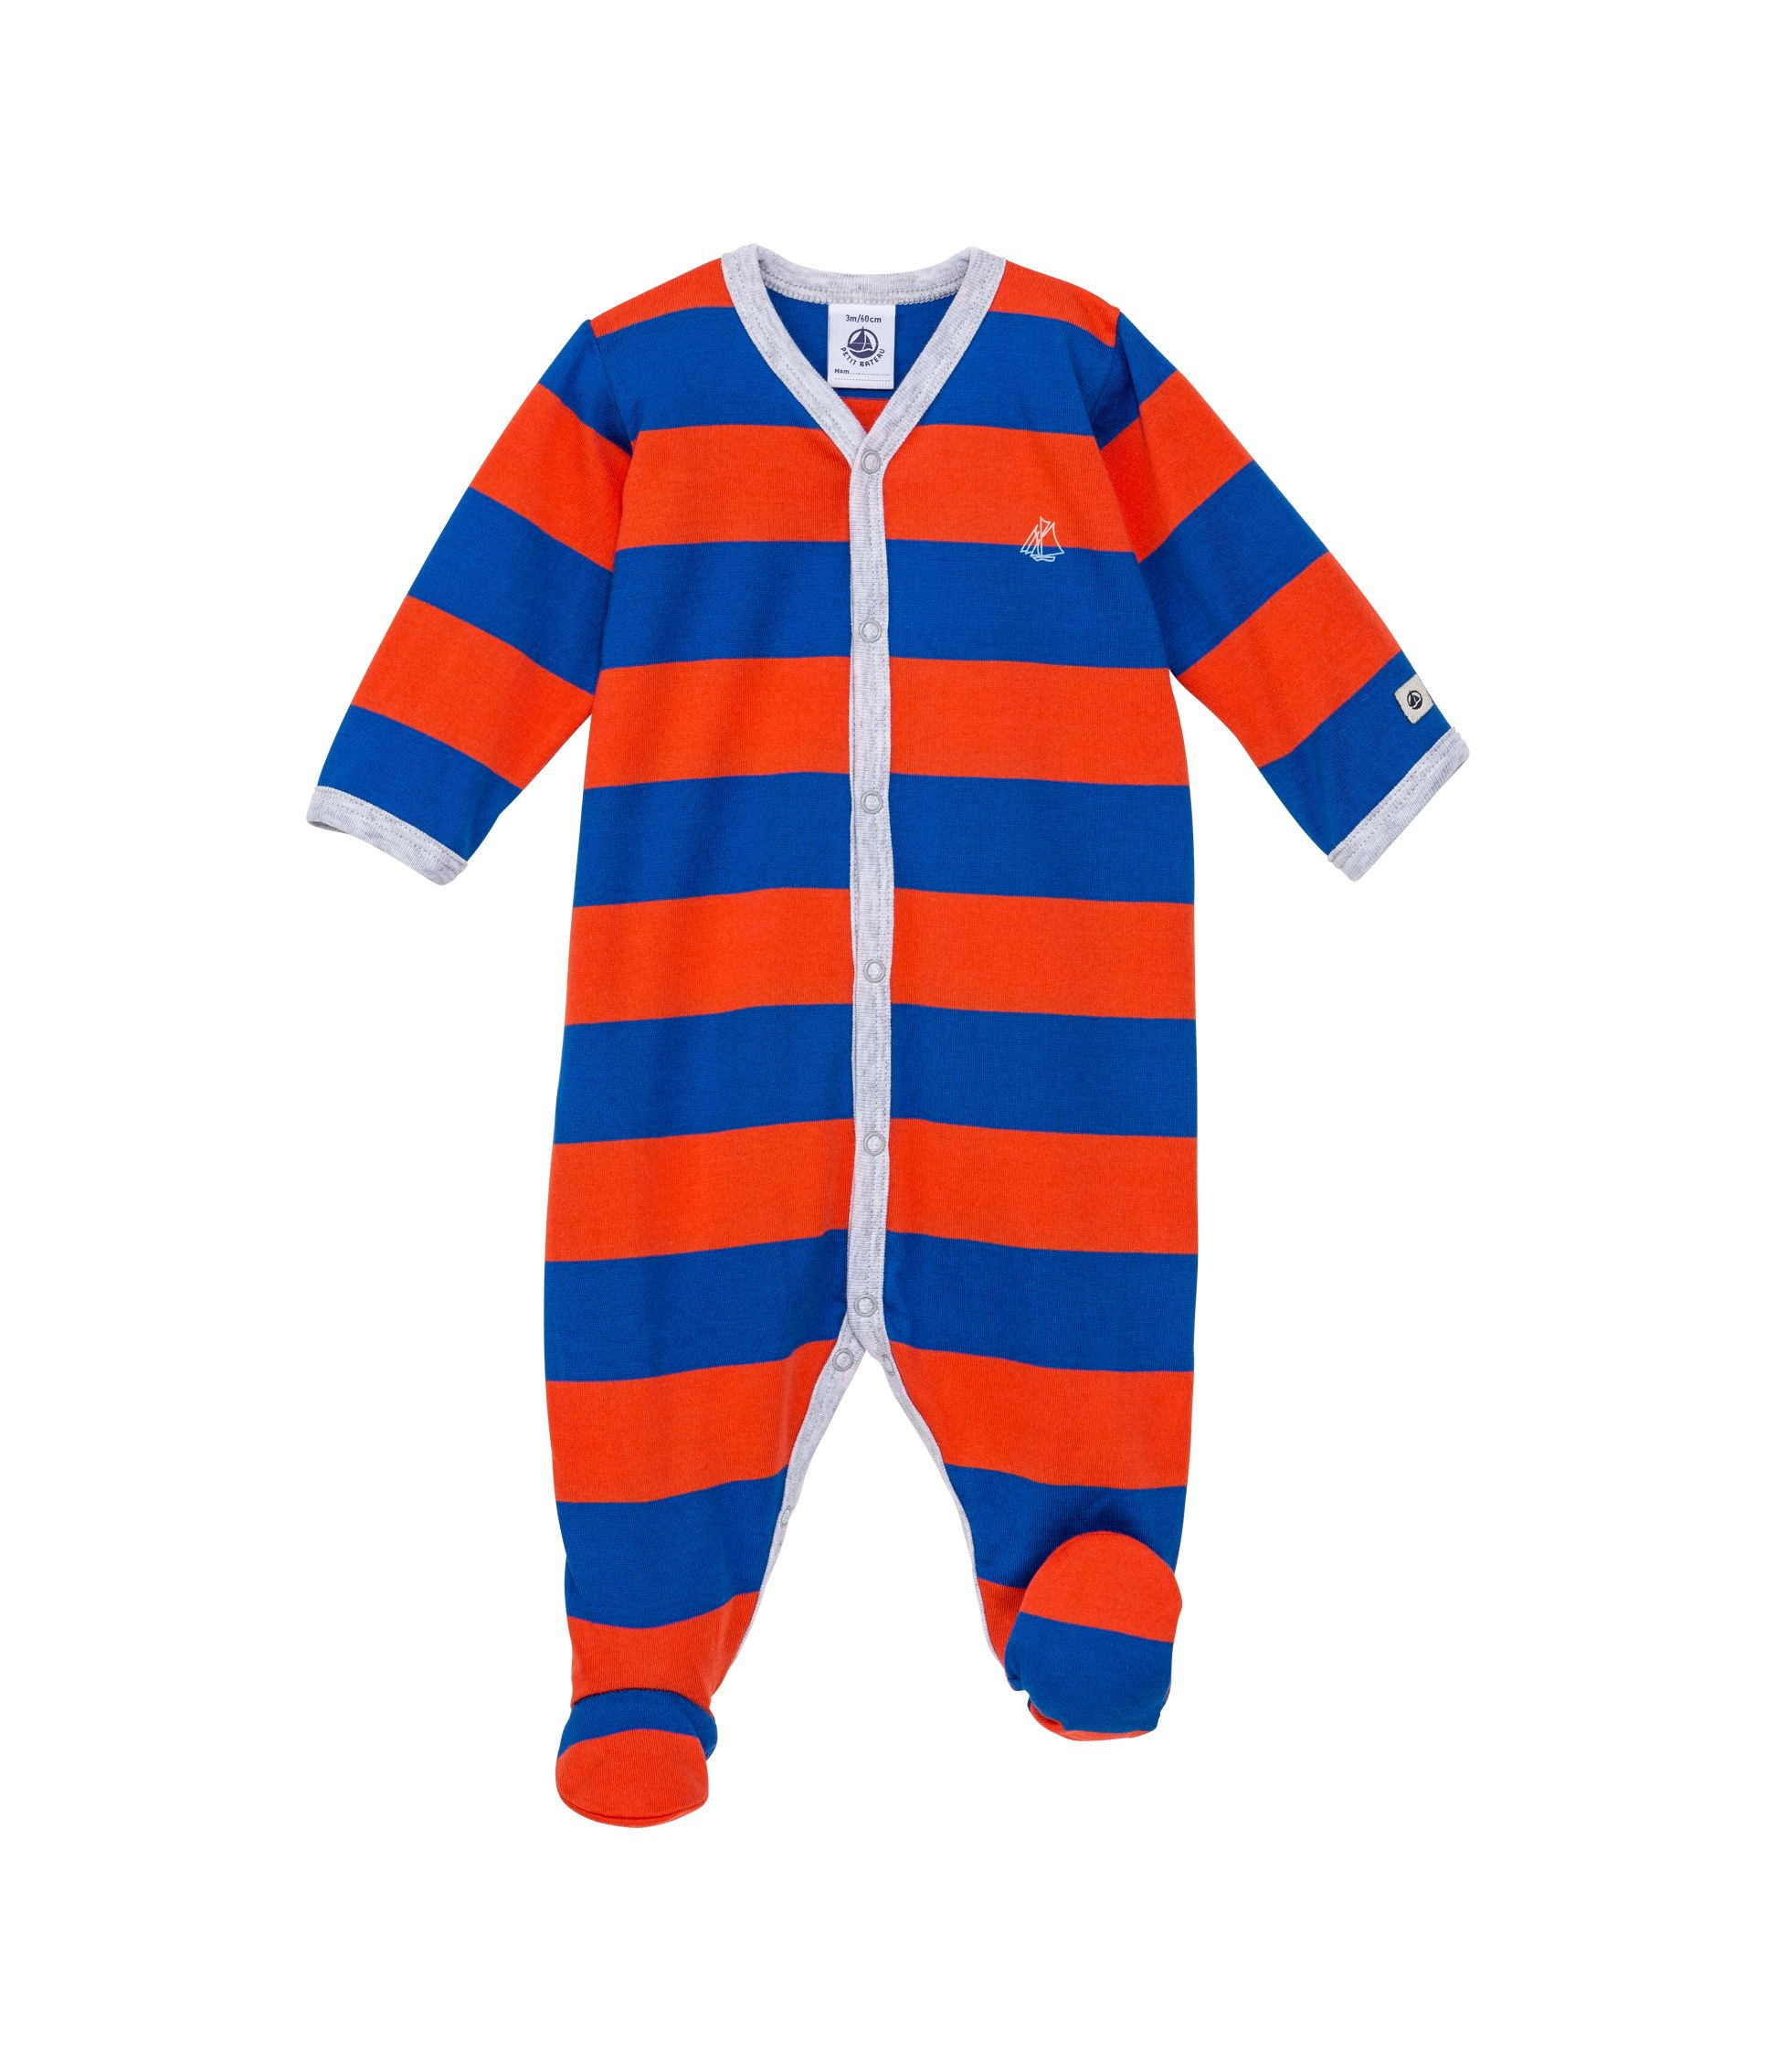 Baby boys sailboat sleepsuit